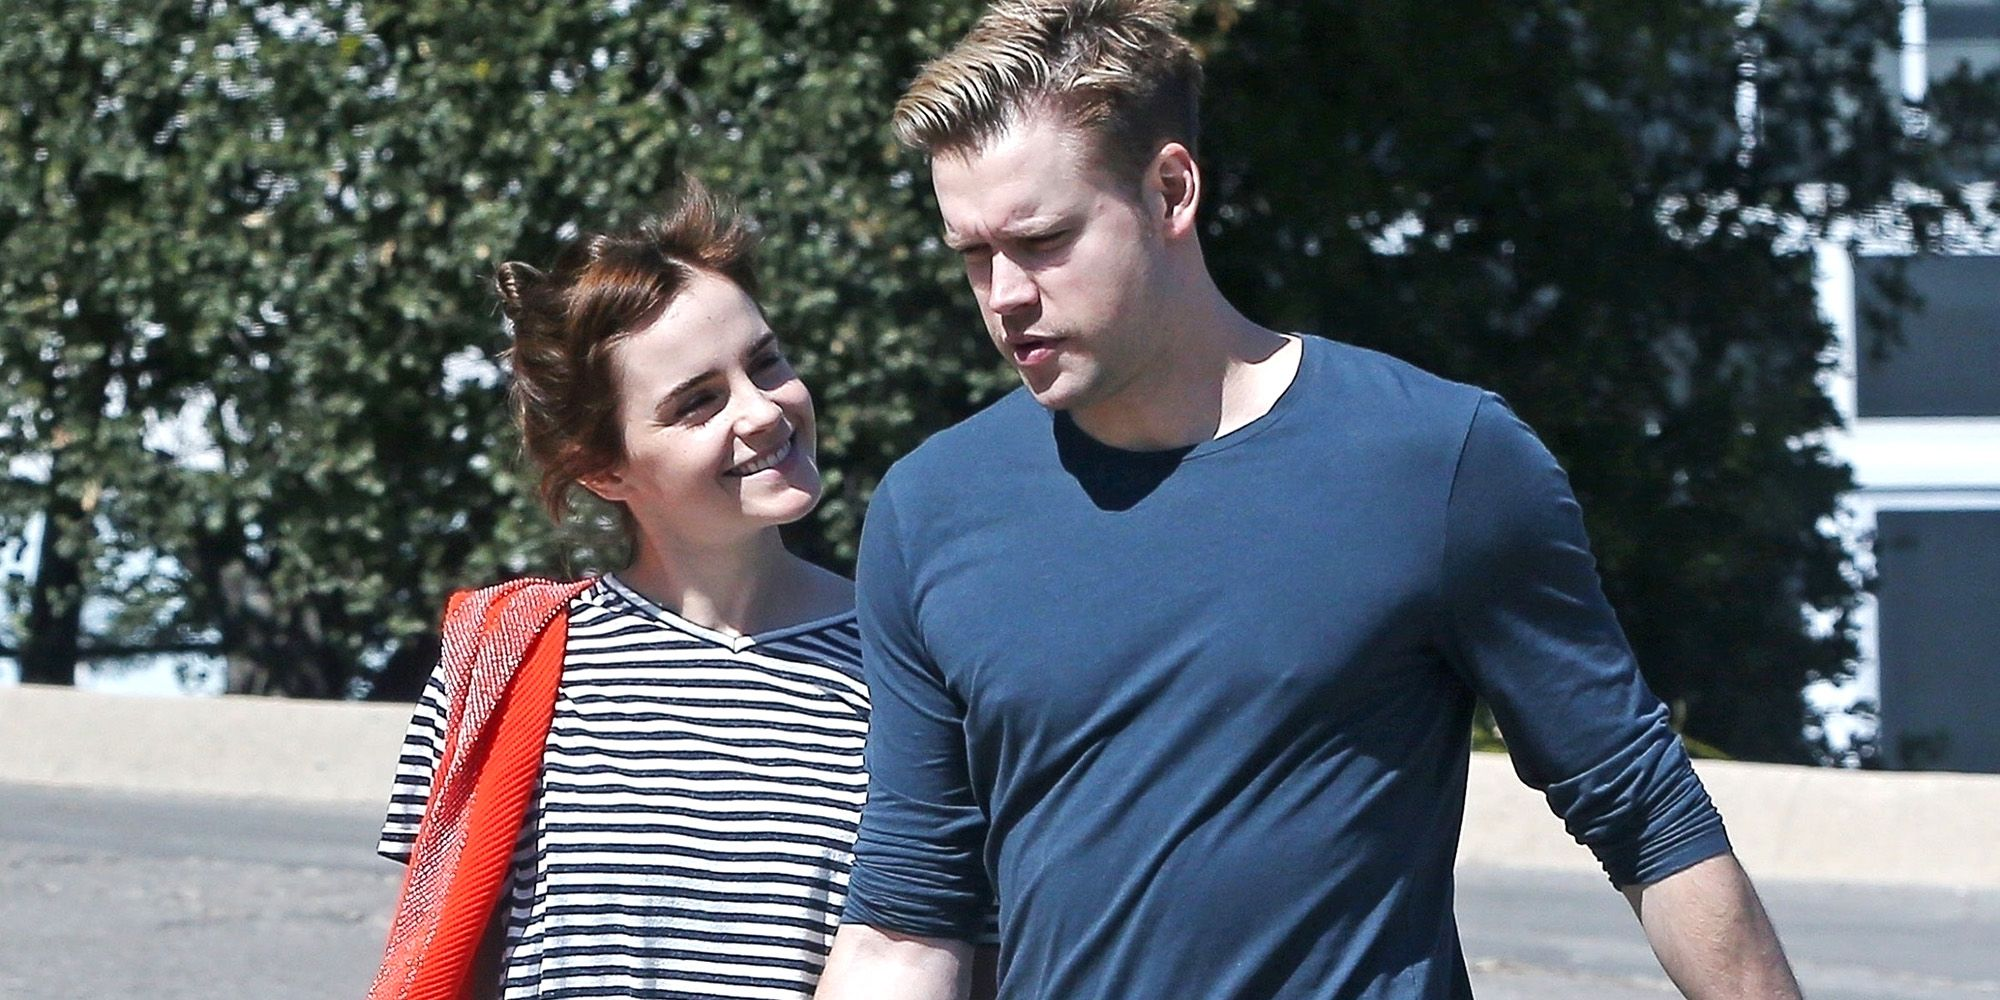 Emma Watson and Rumored Boyfriend Chord Overstreet Hold Hands in First PDA Photo